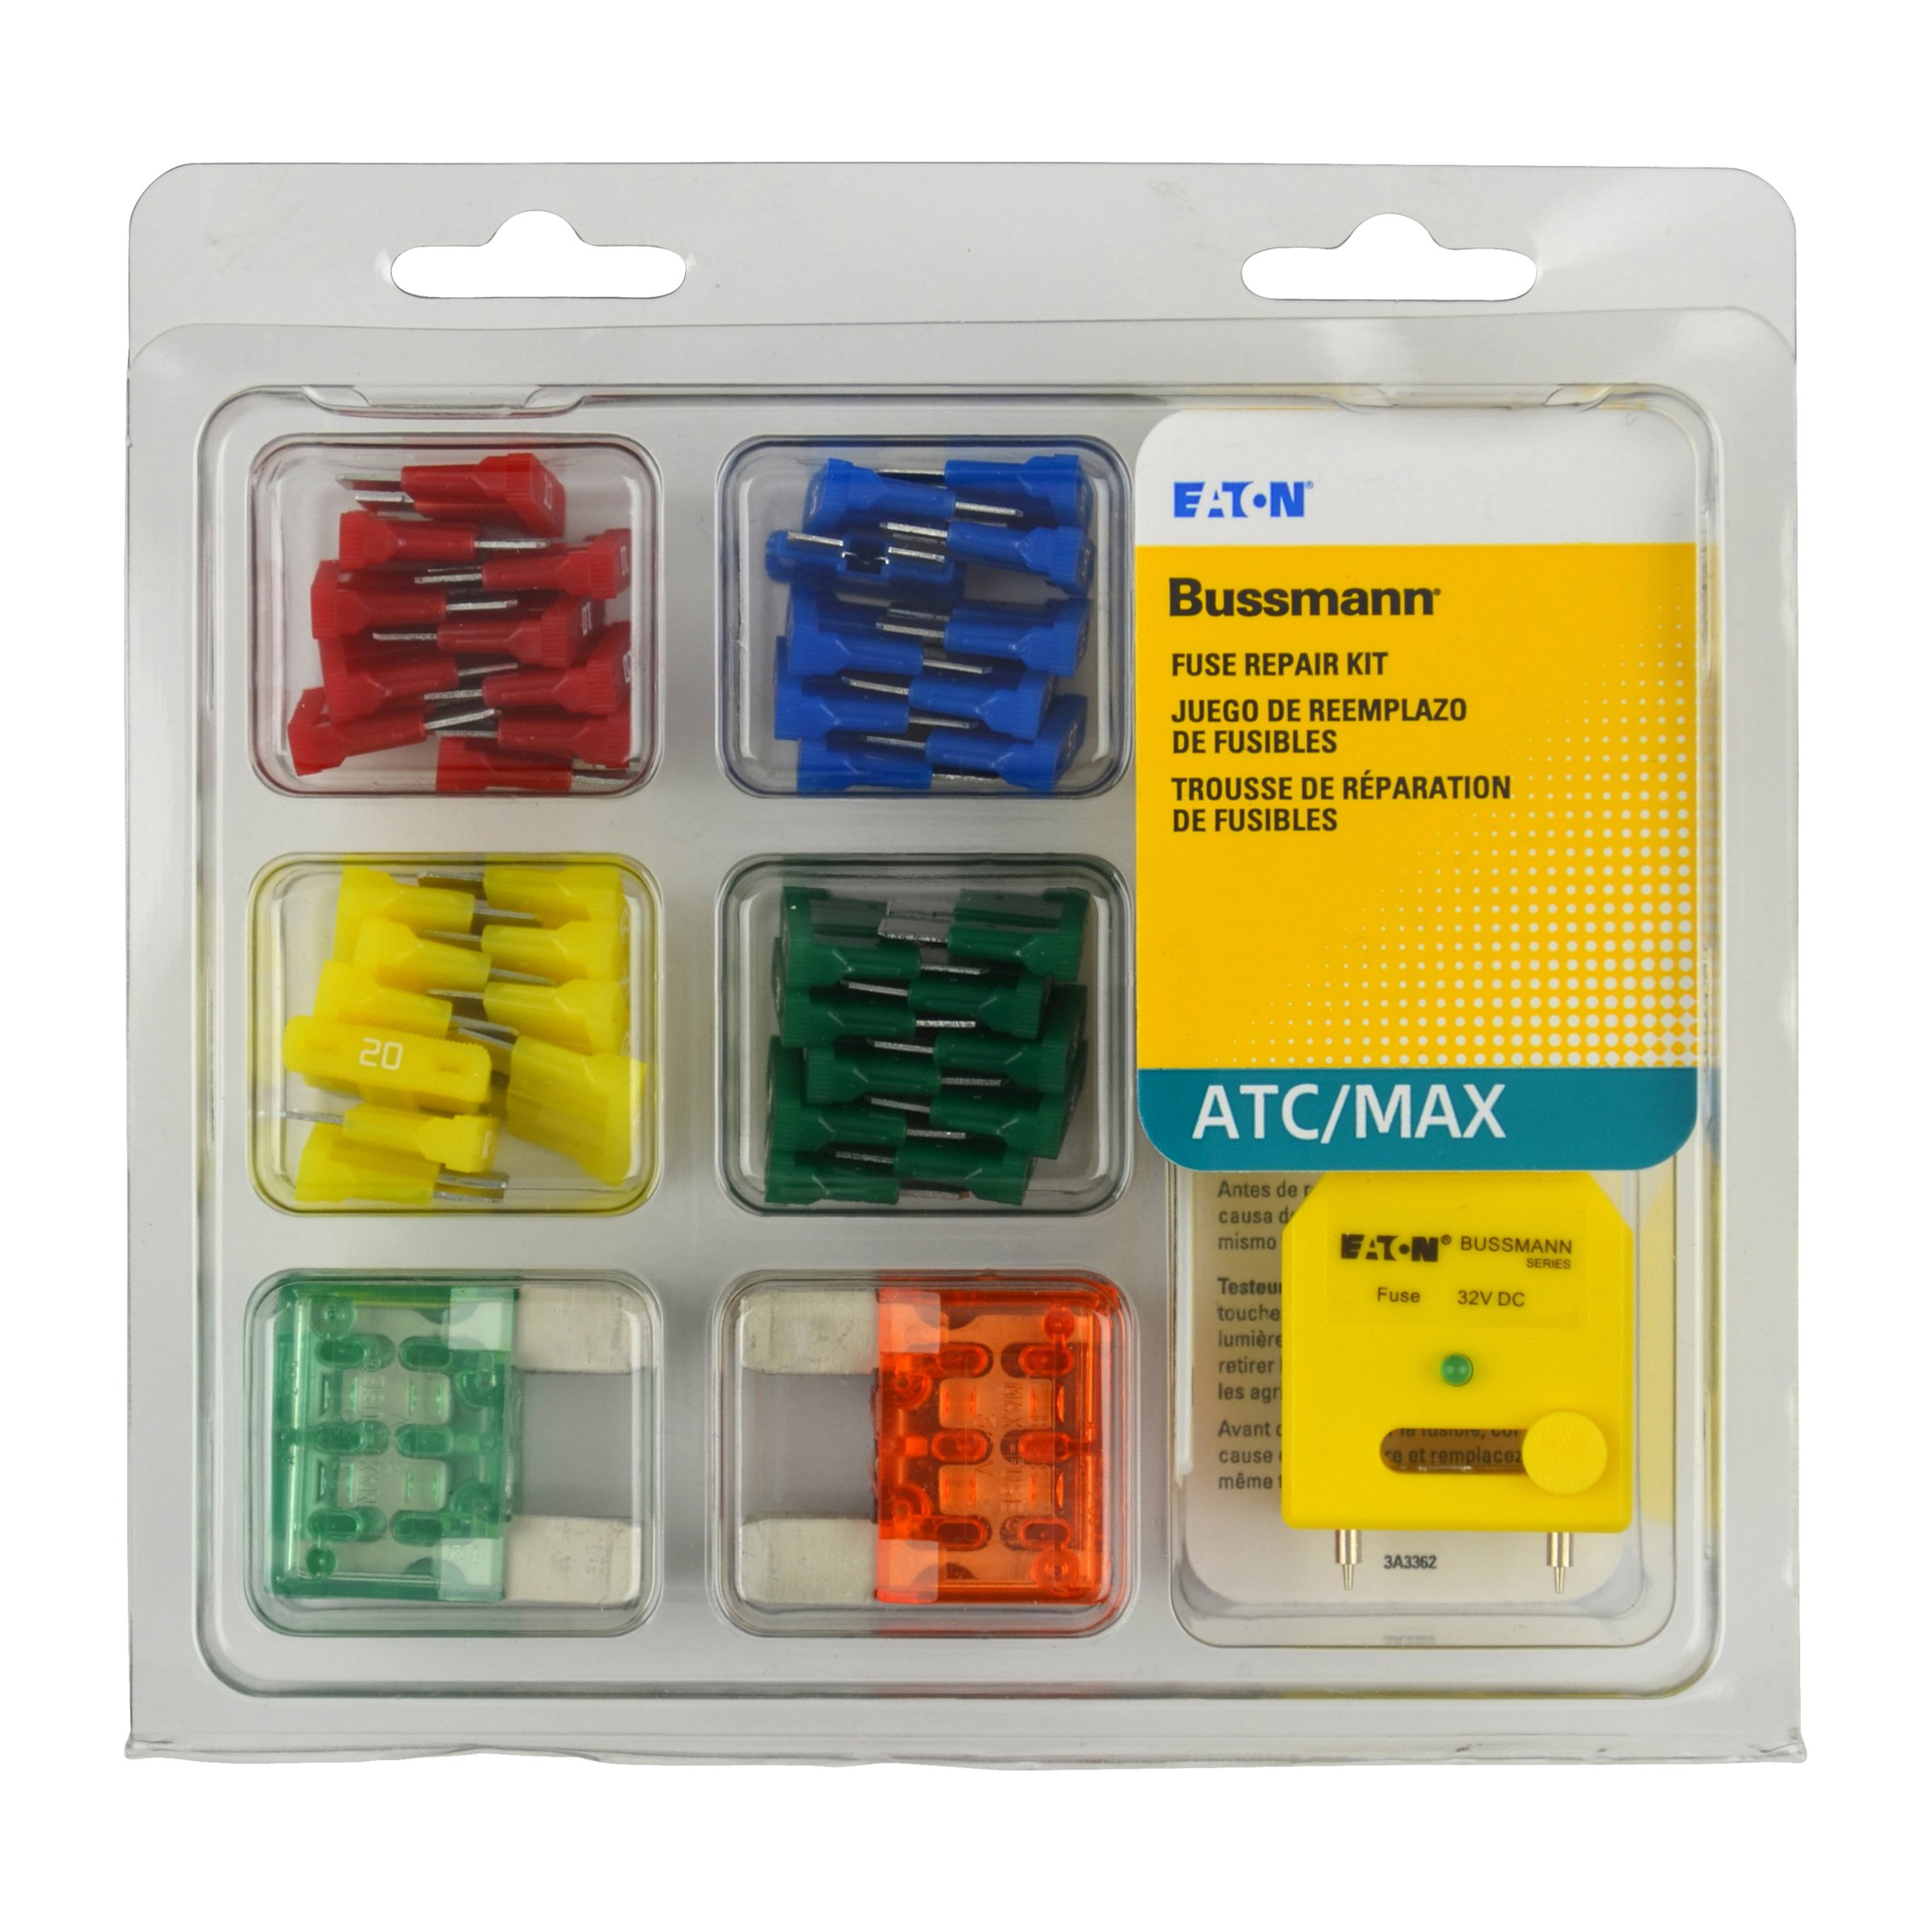 Bussmann NO.53 ATC and MAXI Blade Fuse Tester/Puller Kit